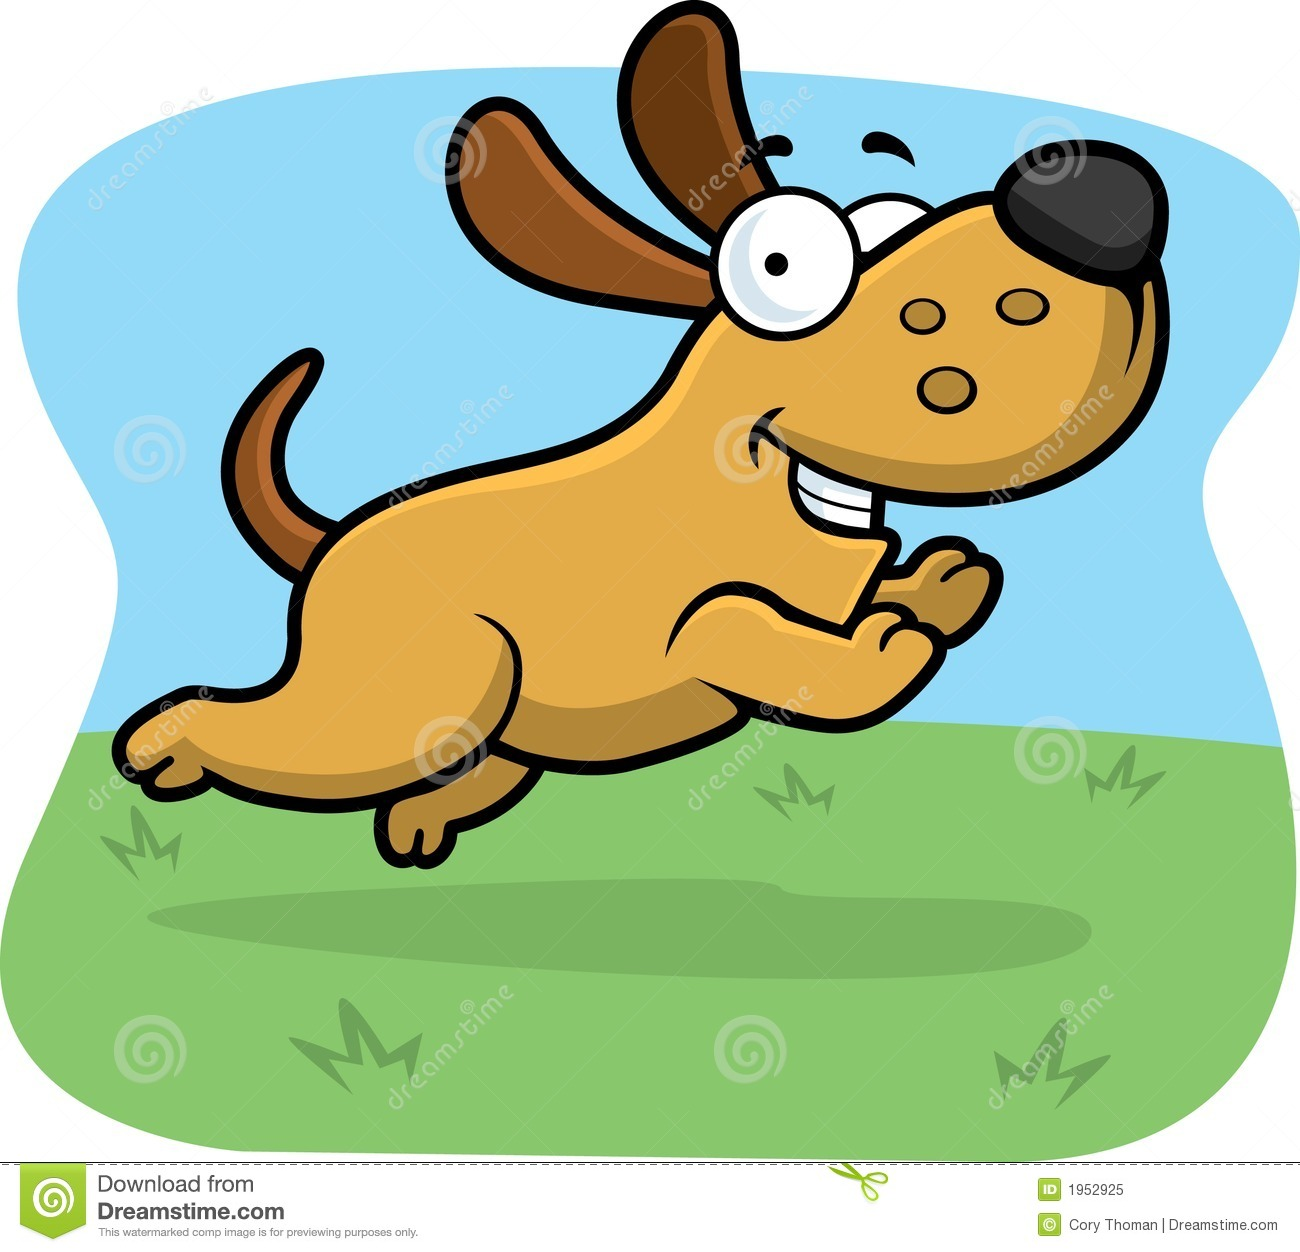 Real dog jumping clipart vector transparent stock Real dog jumping clipart - ClipartFest vector transparent stock